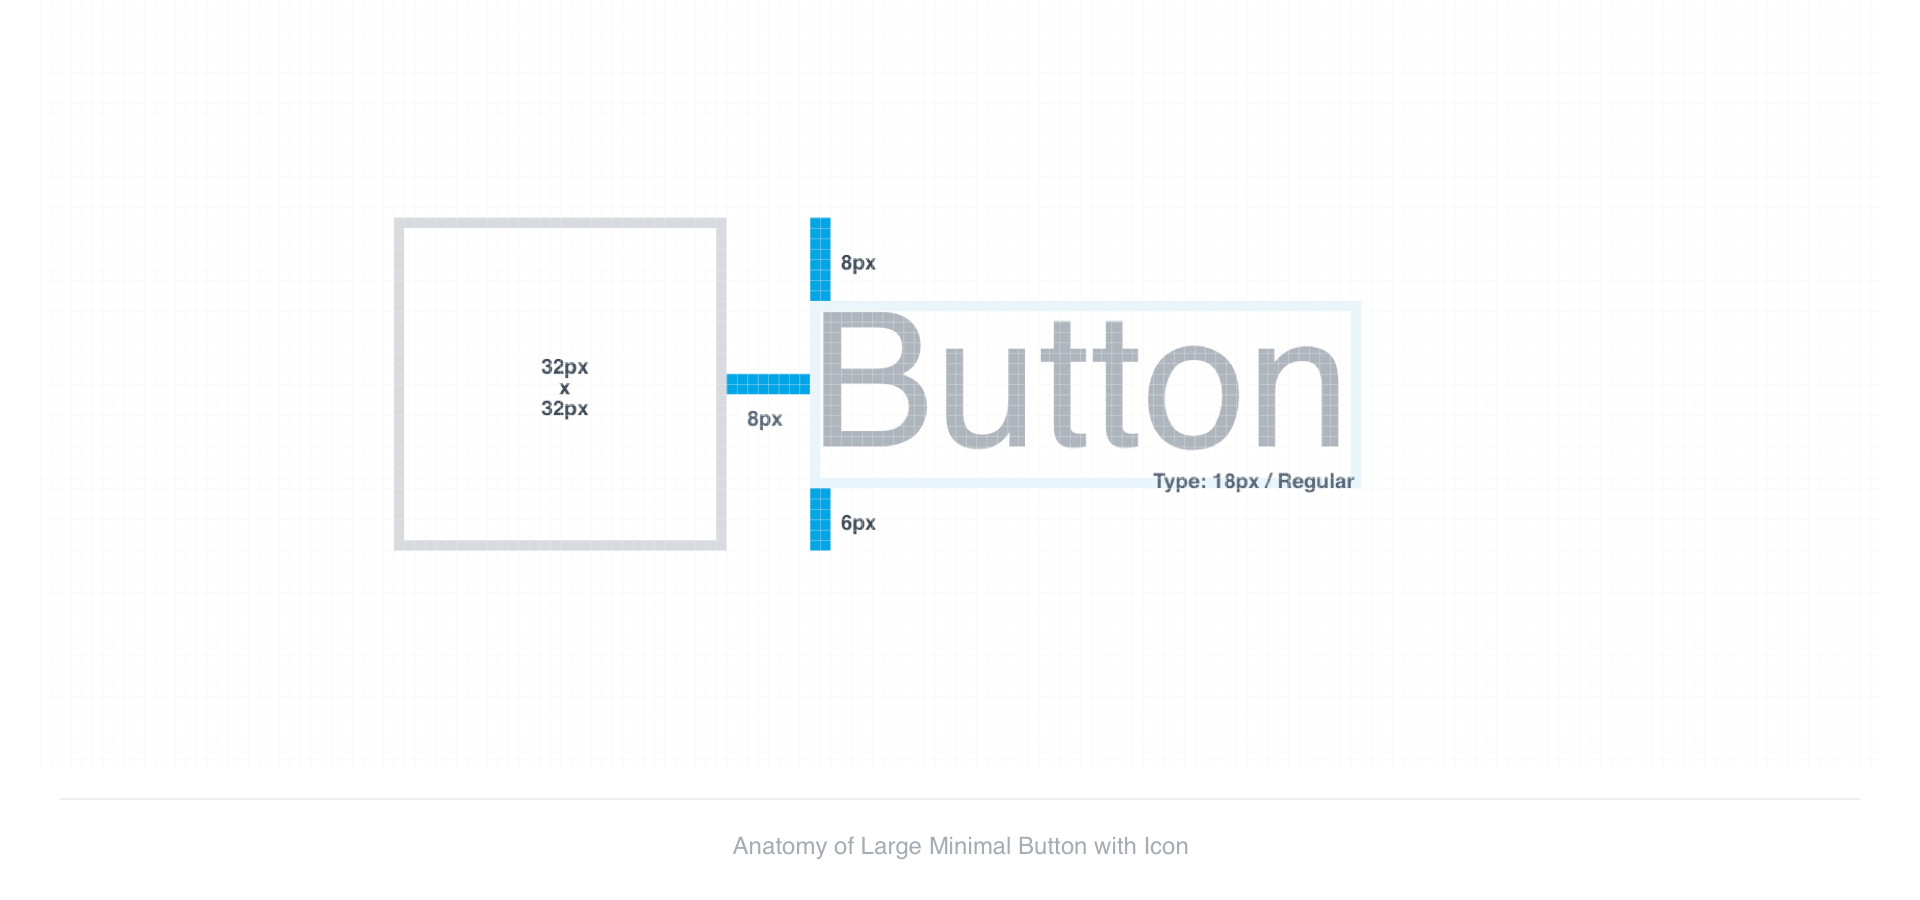 Anatomy of Large Minimal Button